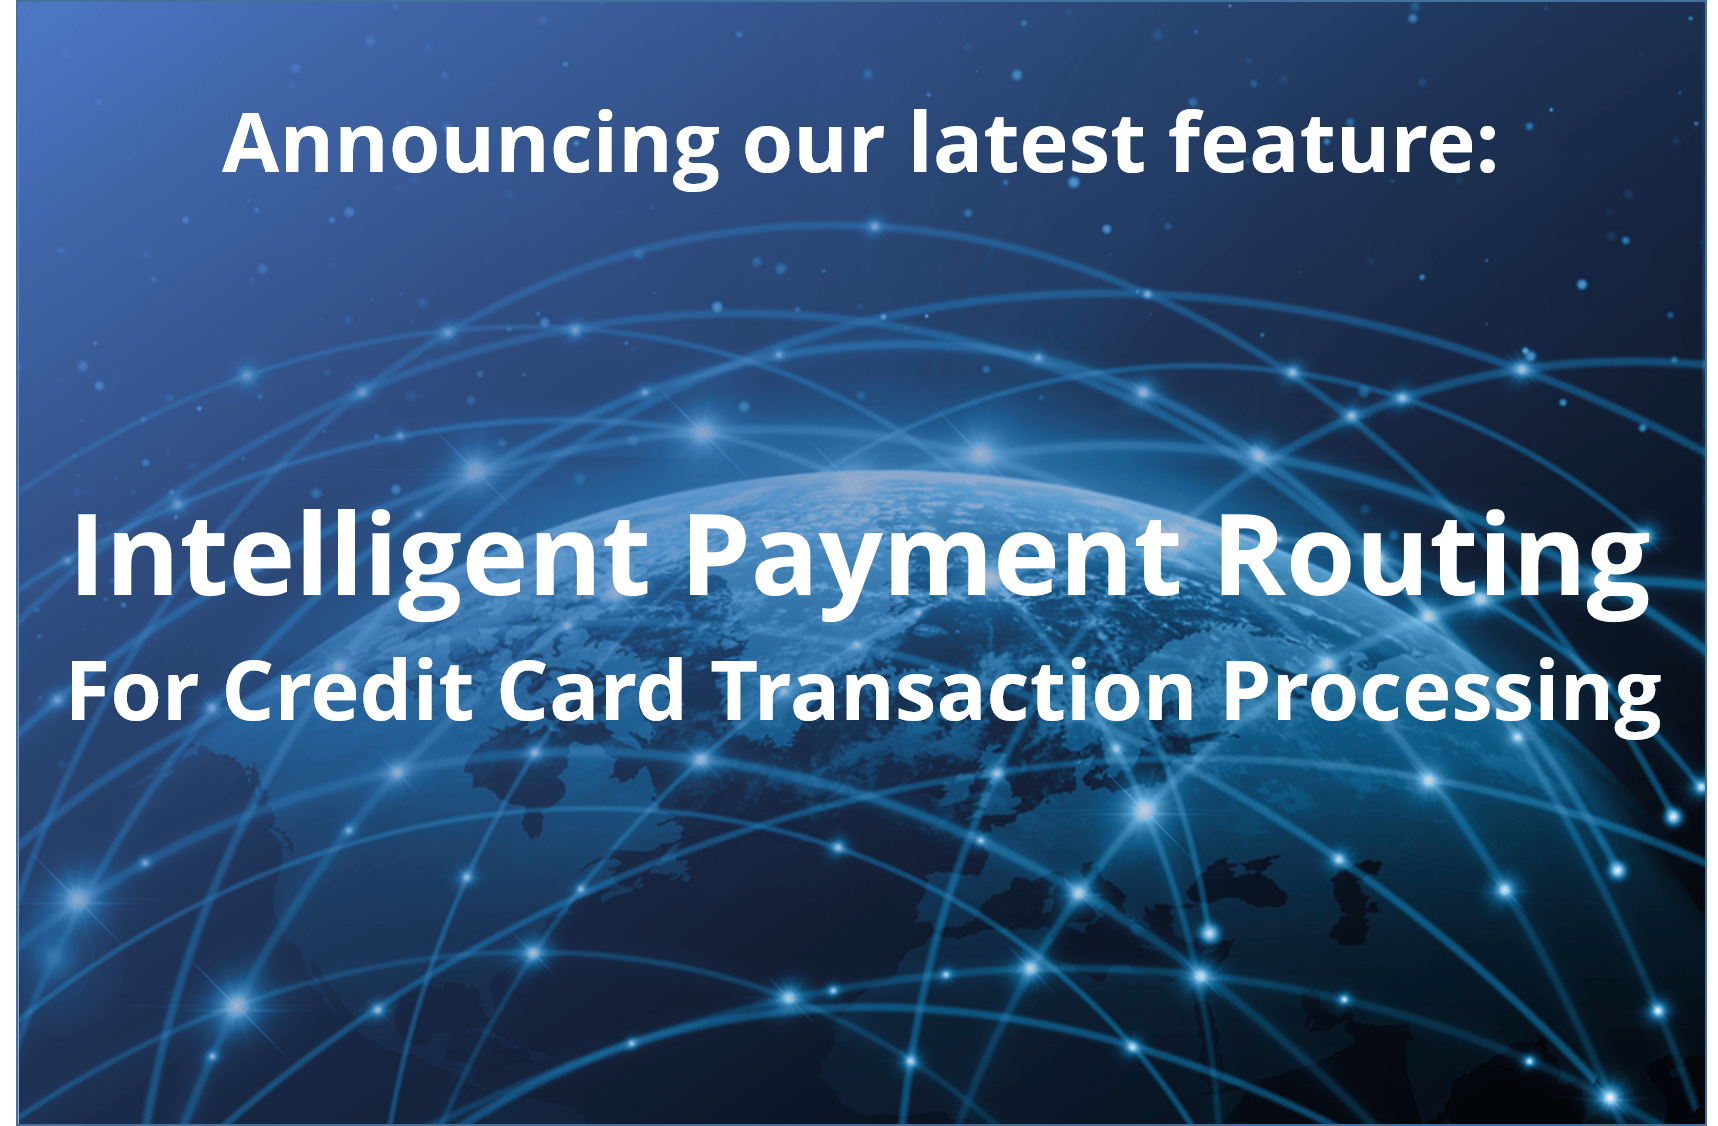 Announcing: Intelligent Payment Routing For Credit Card